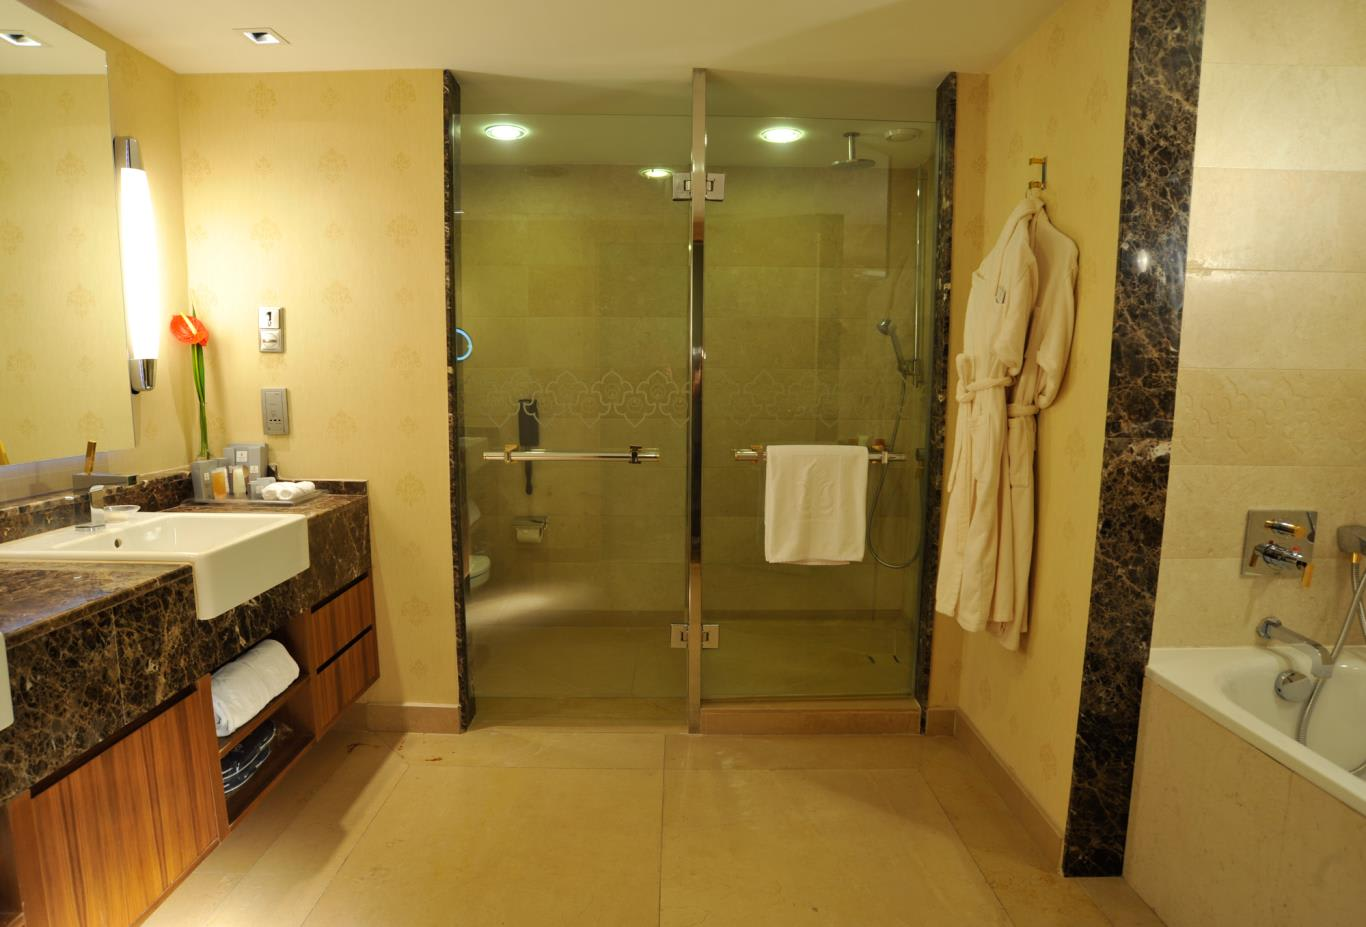 One bedroom suite bathroom